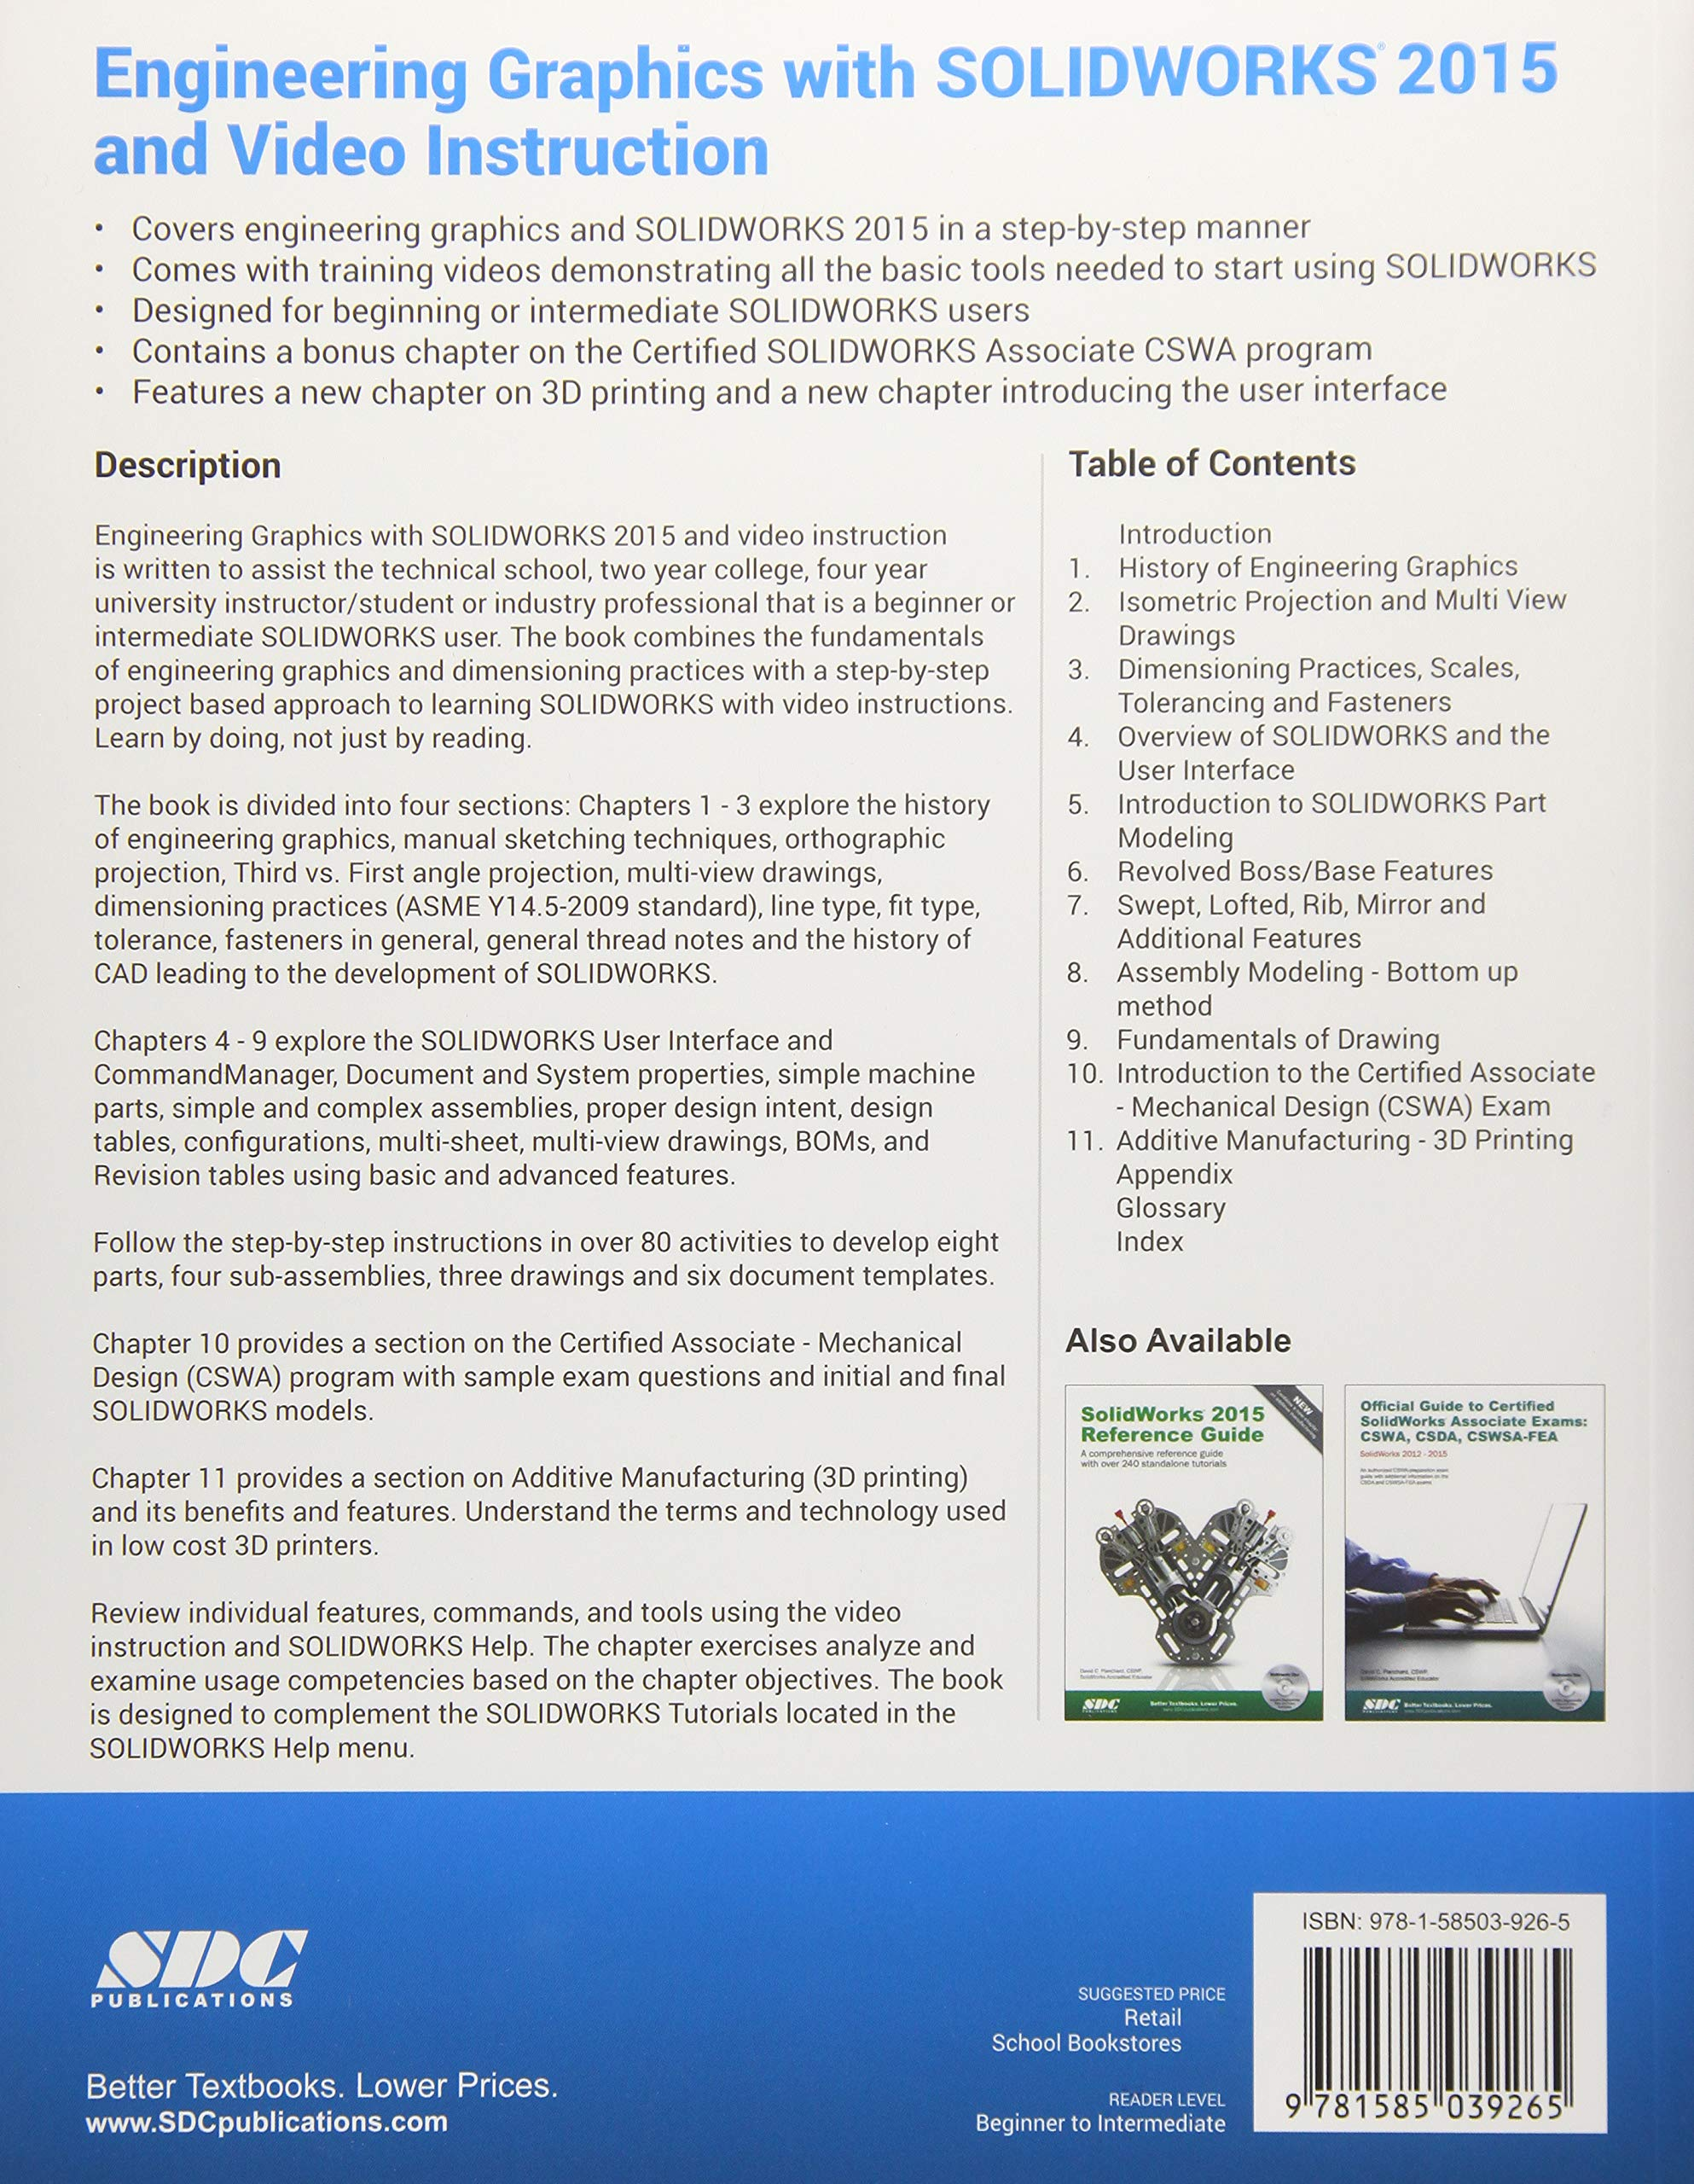 Engineering Graphics With Solidworks 2015 And Video Instruction David C Planchard 9781585039265 Amazon Com Books